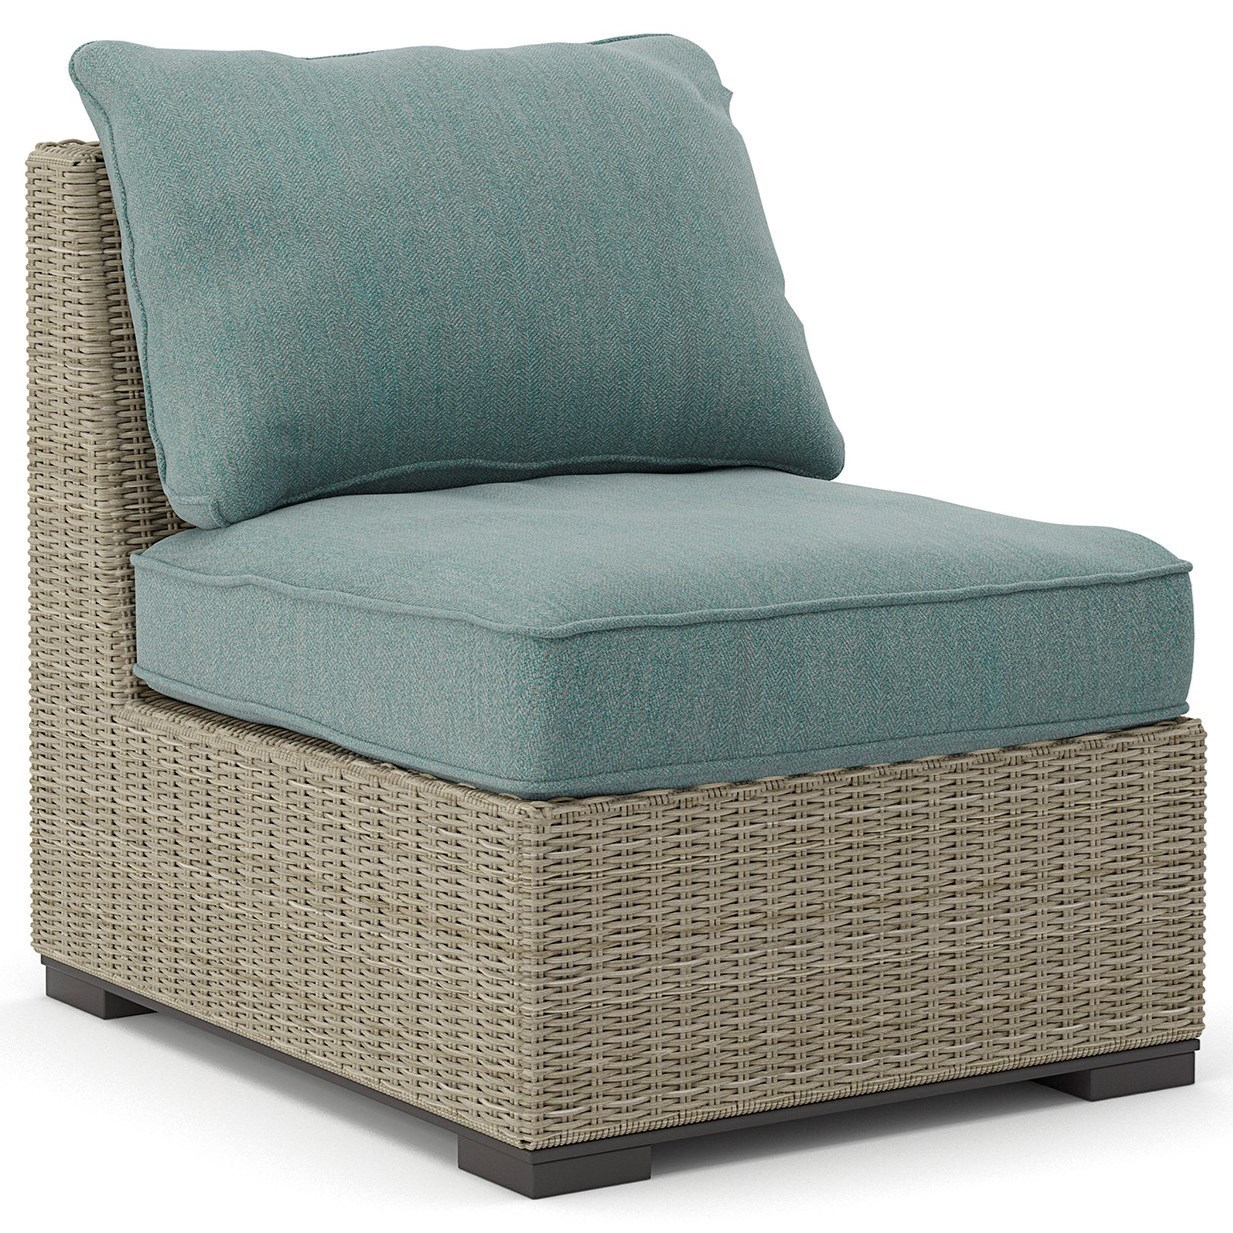 Signature Design by Ashley Silent Brook Armless Chair w/ Cushion - Item Number: P443-846